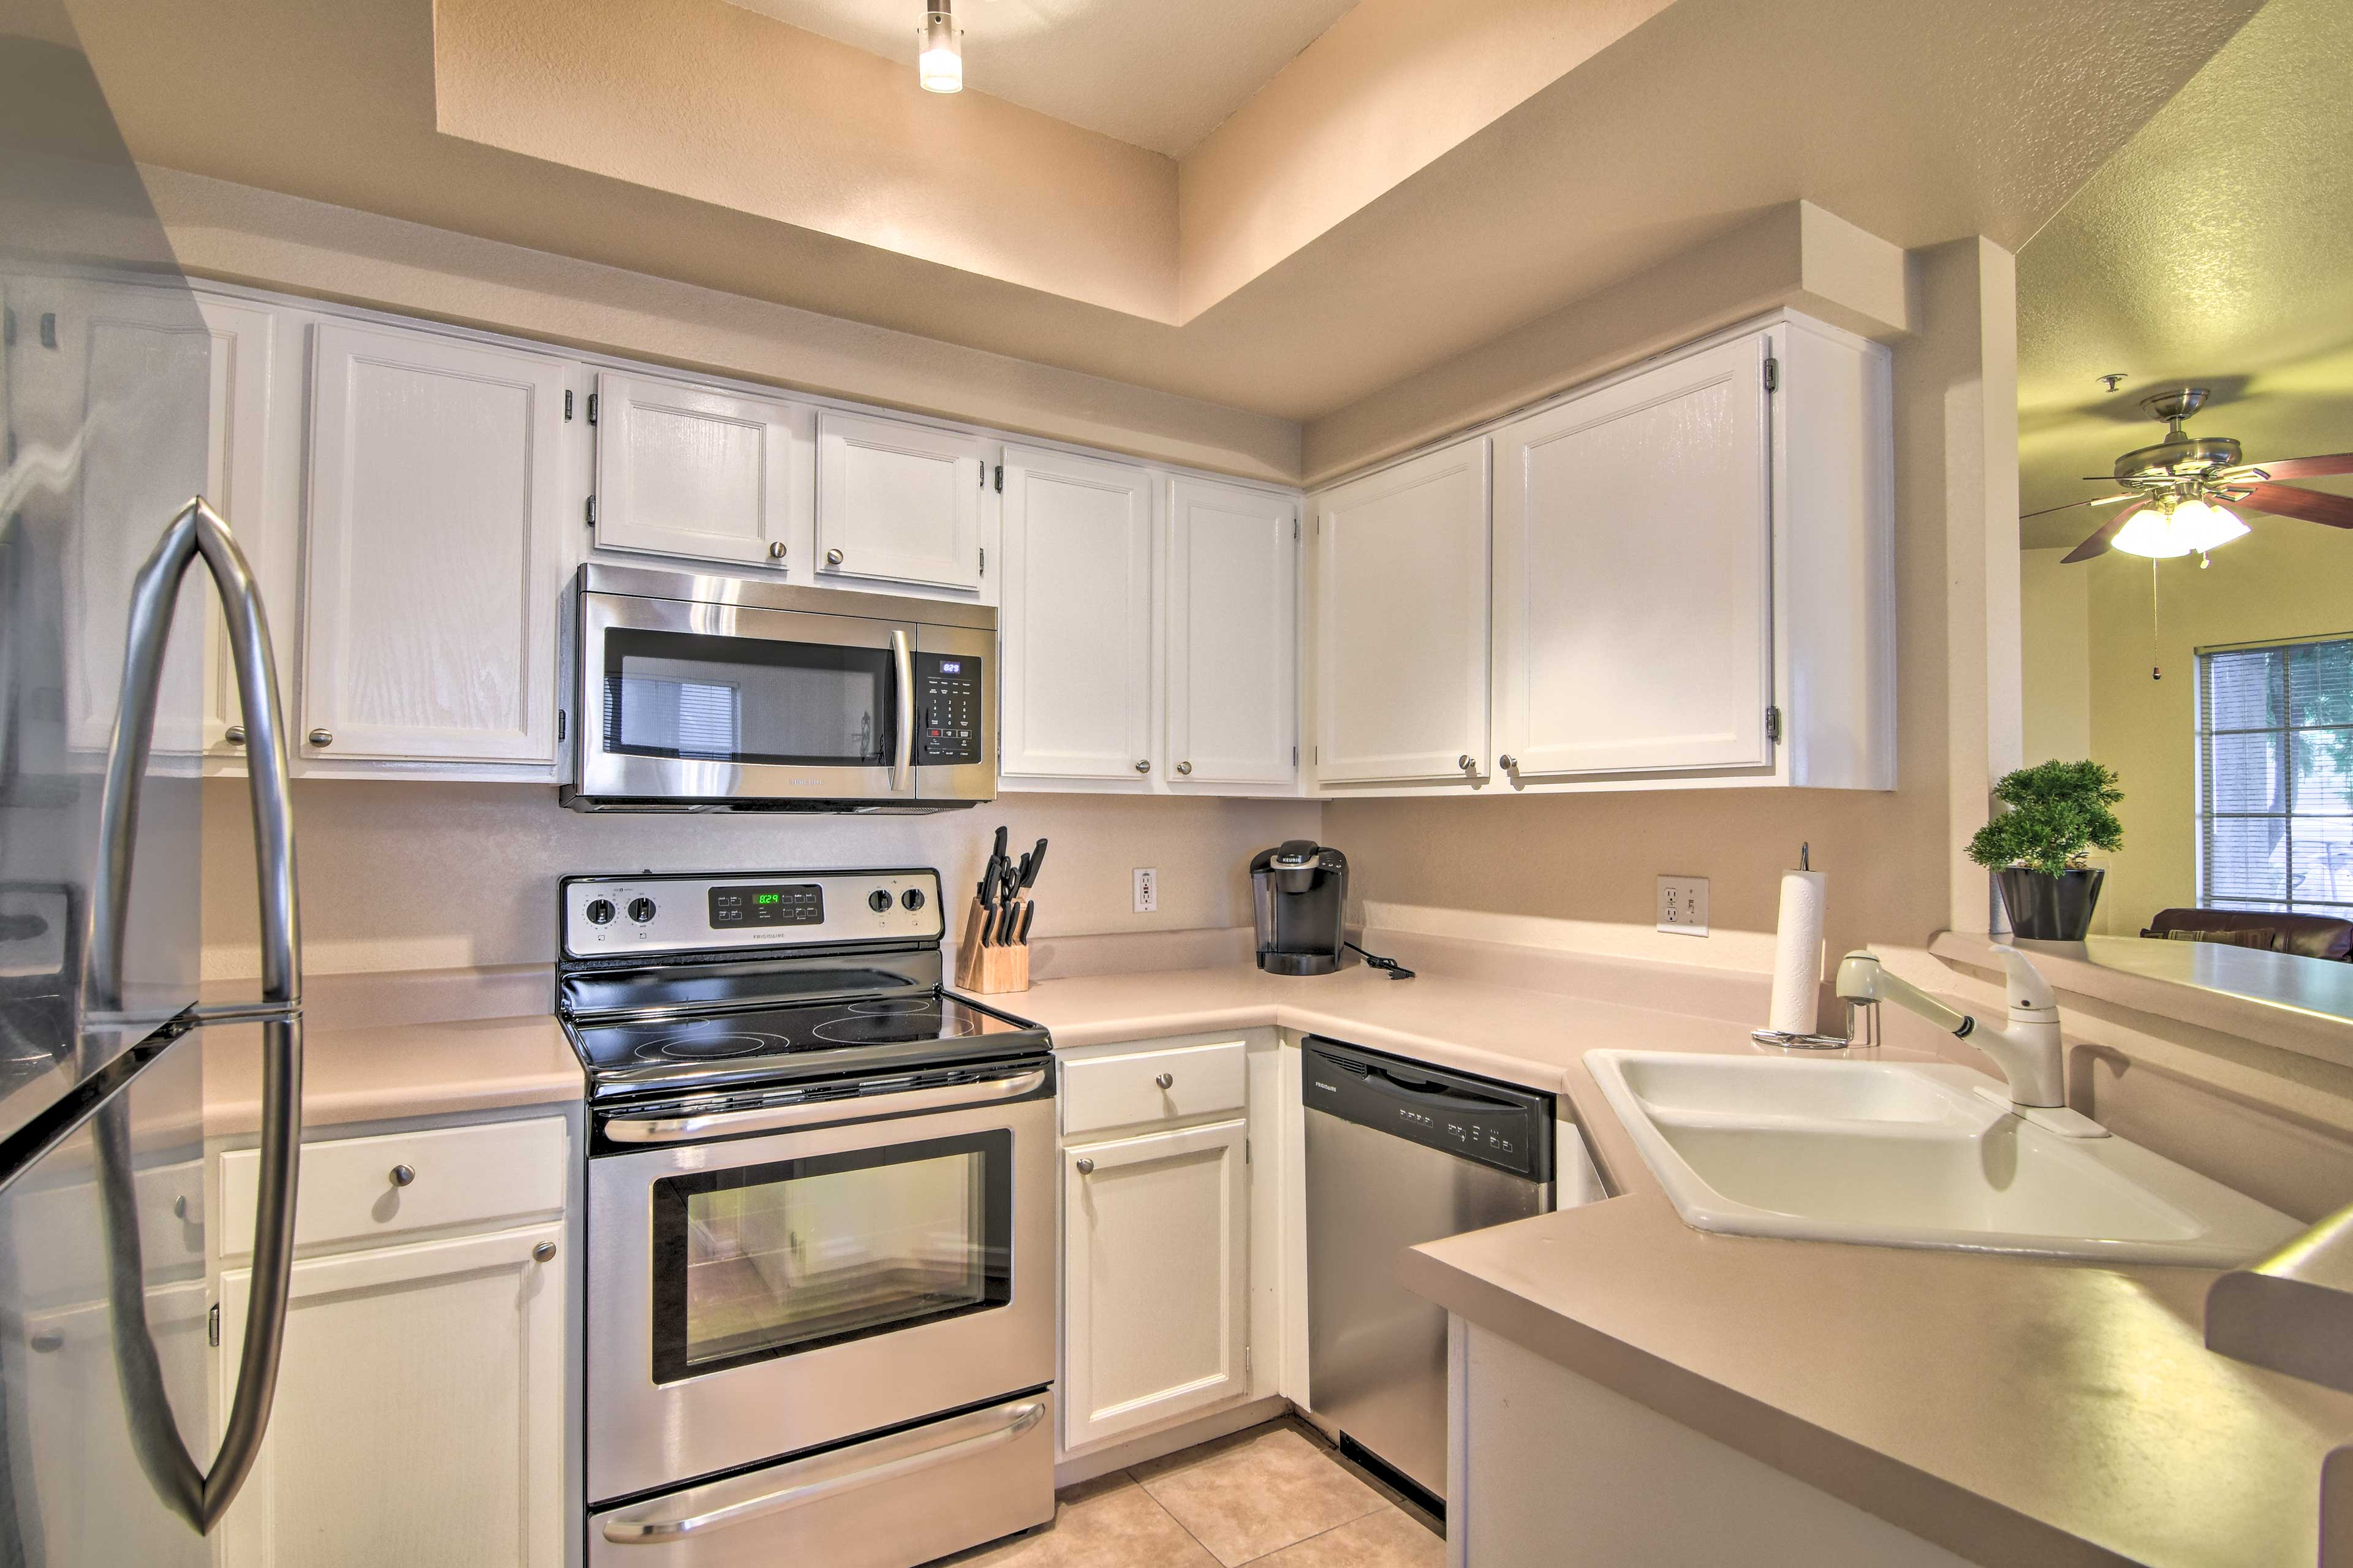 The fully equipped kitchen makes it easy to prepare meals.